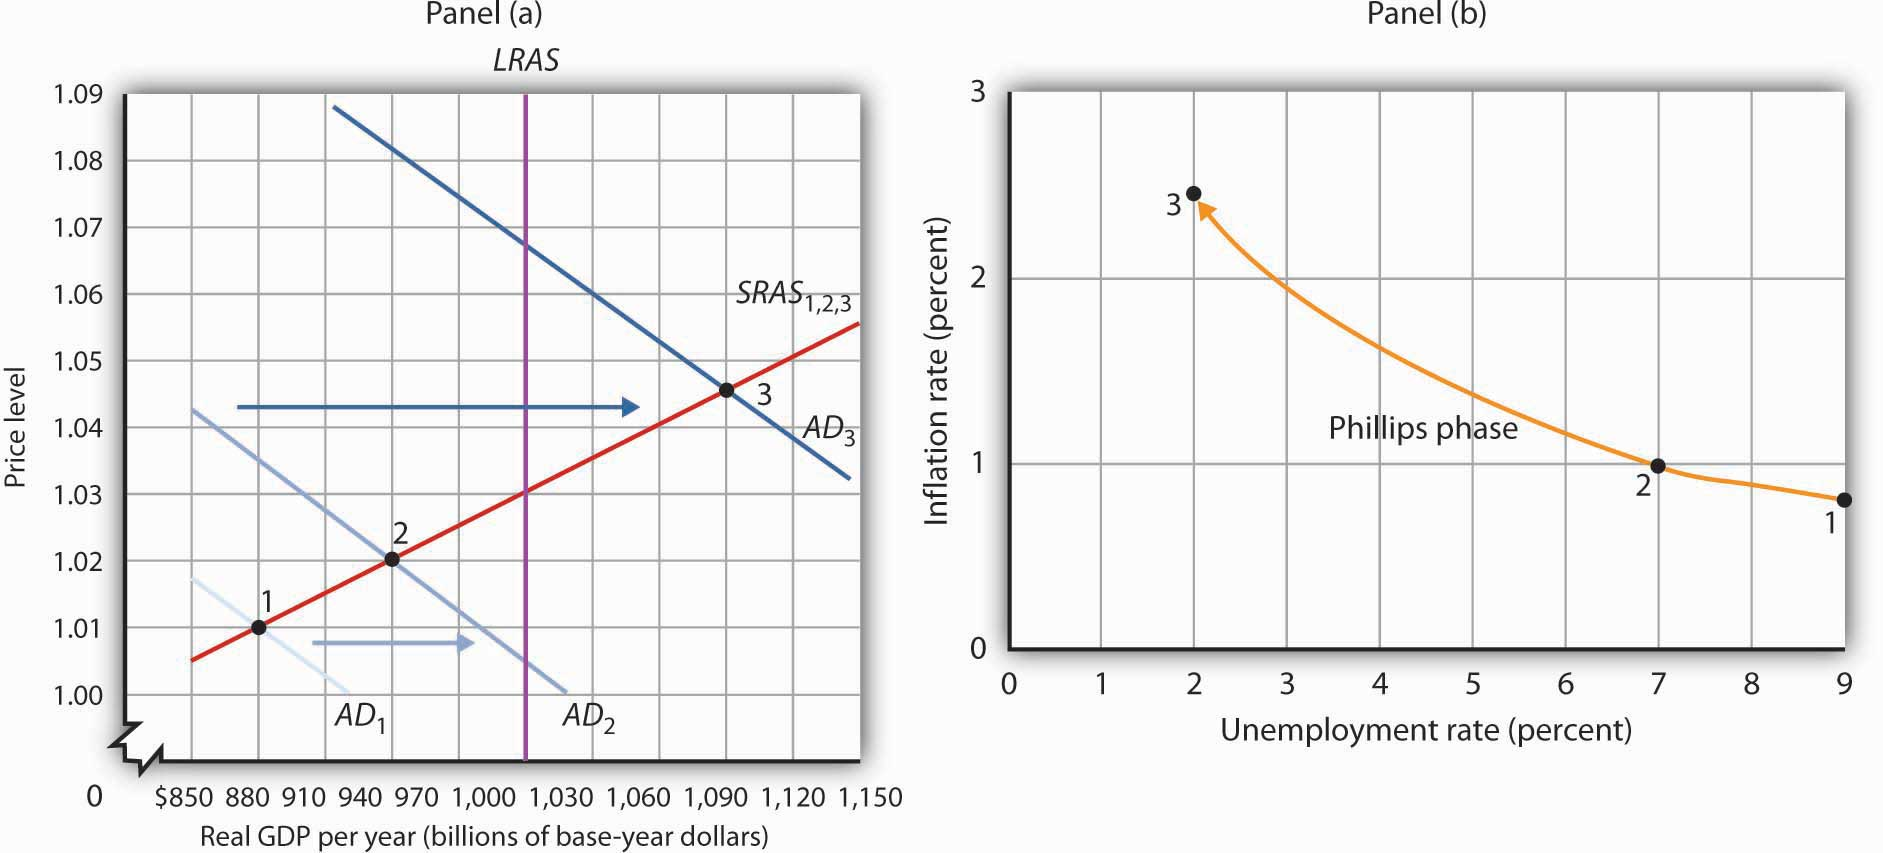 inflation and unemployment a phillips phase is marked by increases in aggregate demand pushing real gdp and the price level up along the short run aggregate supply curve sras 1 2 3